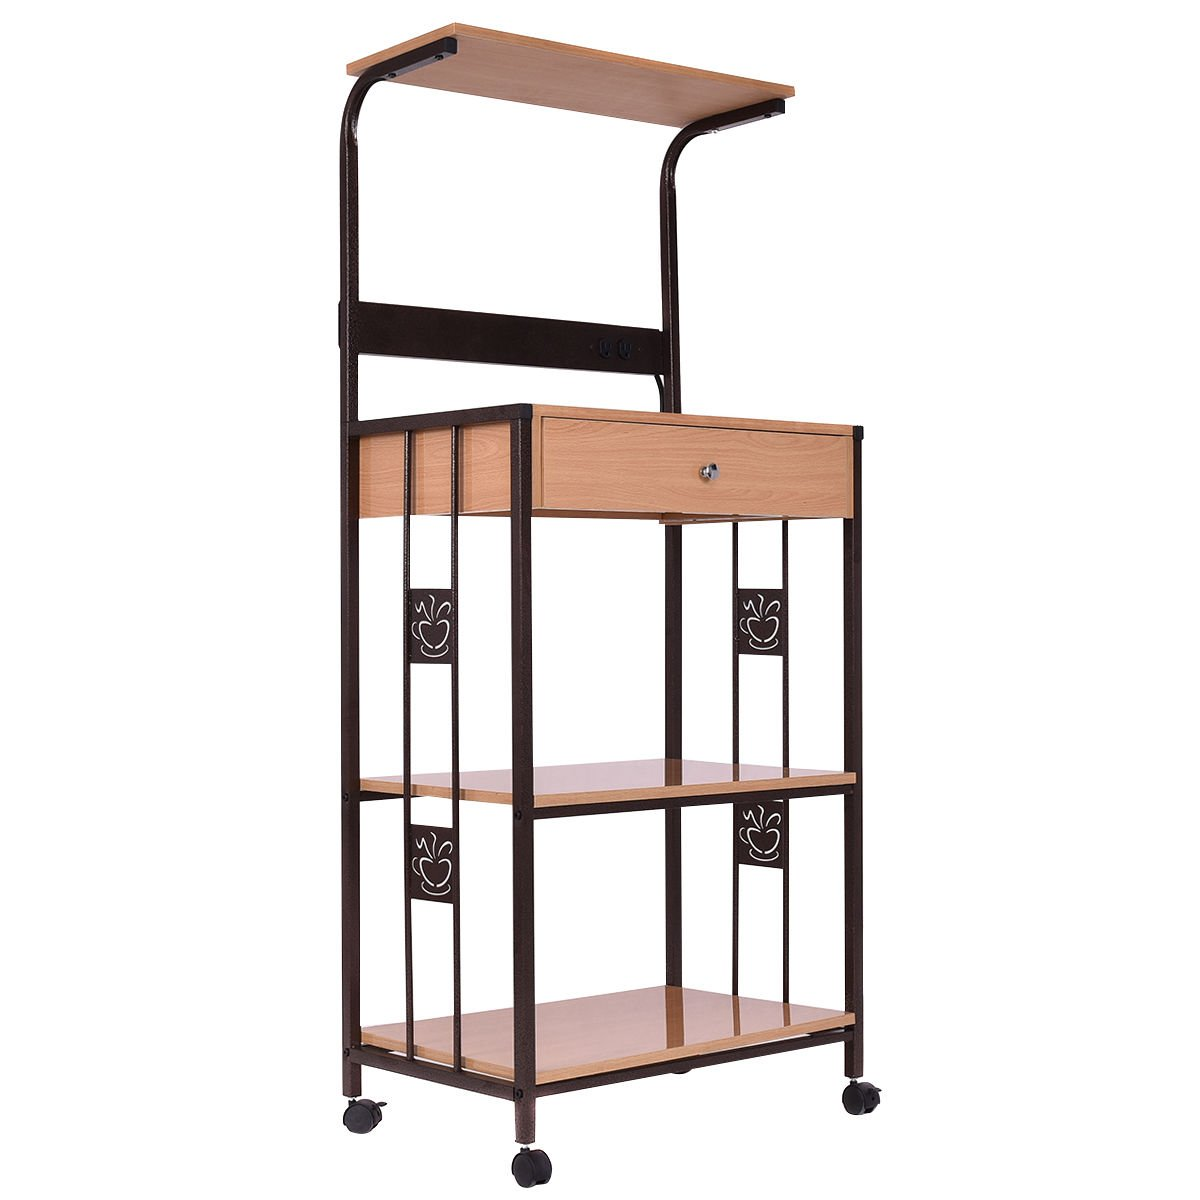 New 59'' Bakers Rack Microwave Stand Rolling Kitchen Storage Cart w/Electric Outlet